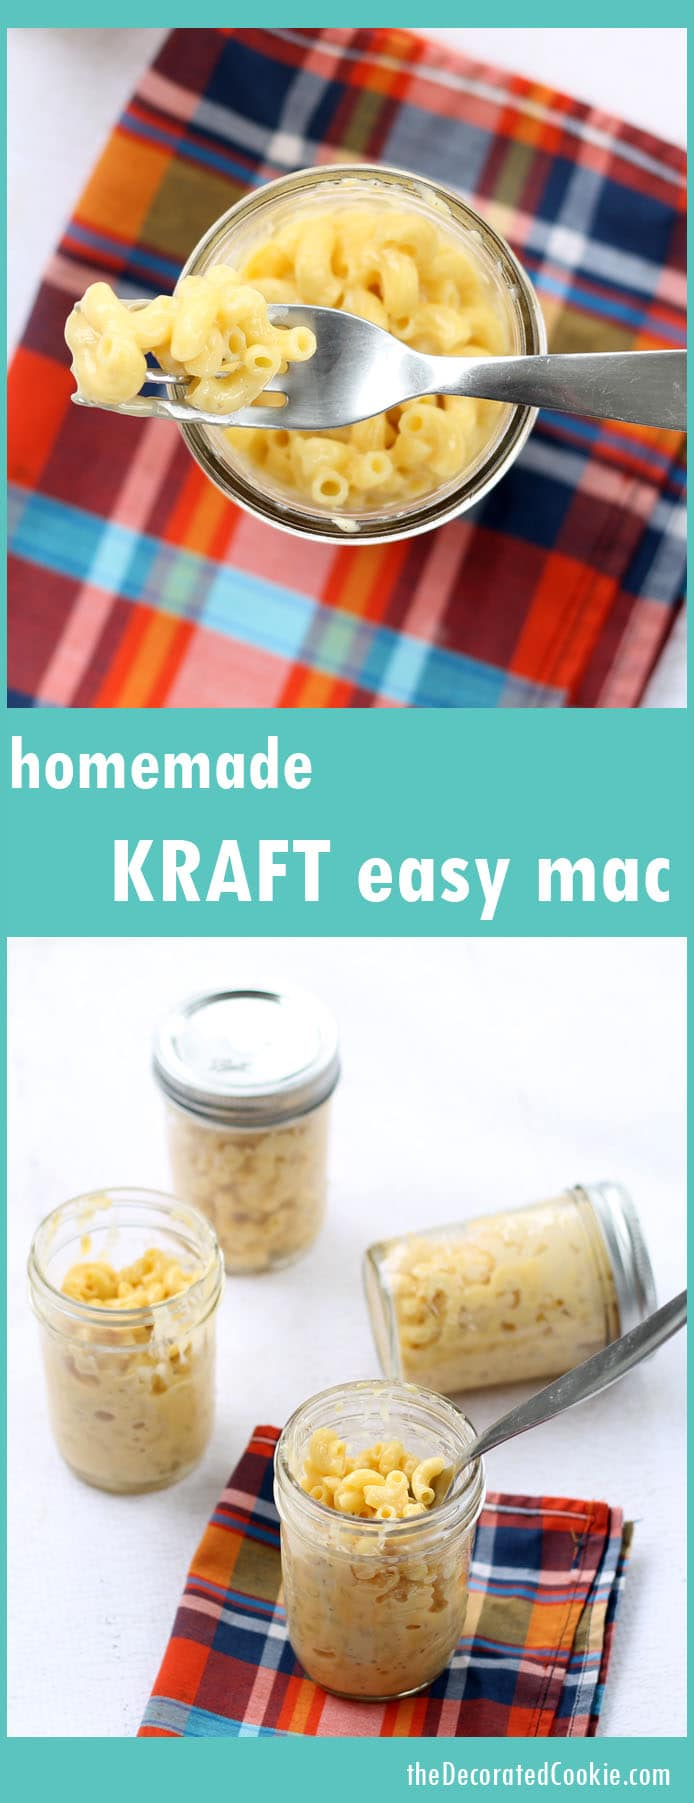 homemade Kraft Easy Mac - quick mac and cheese